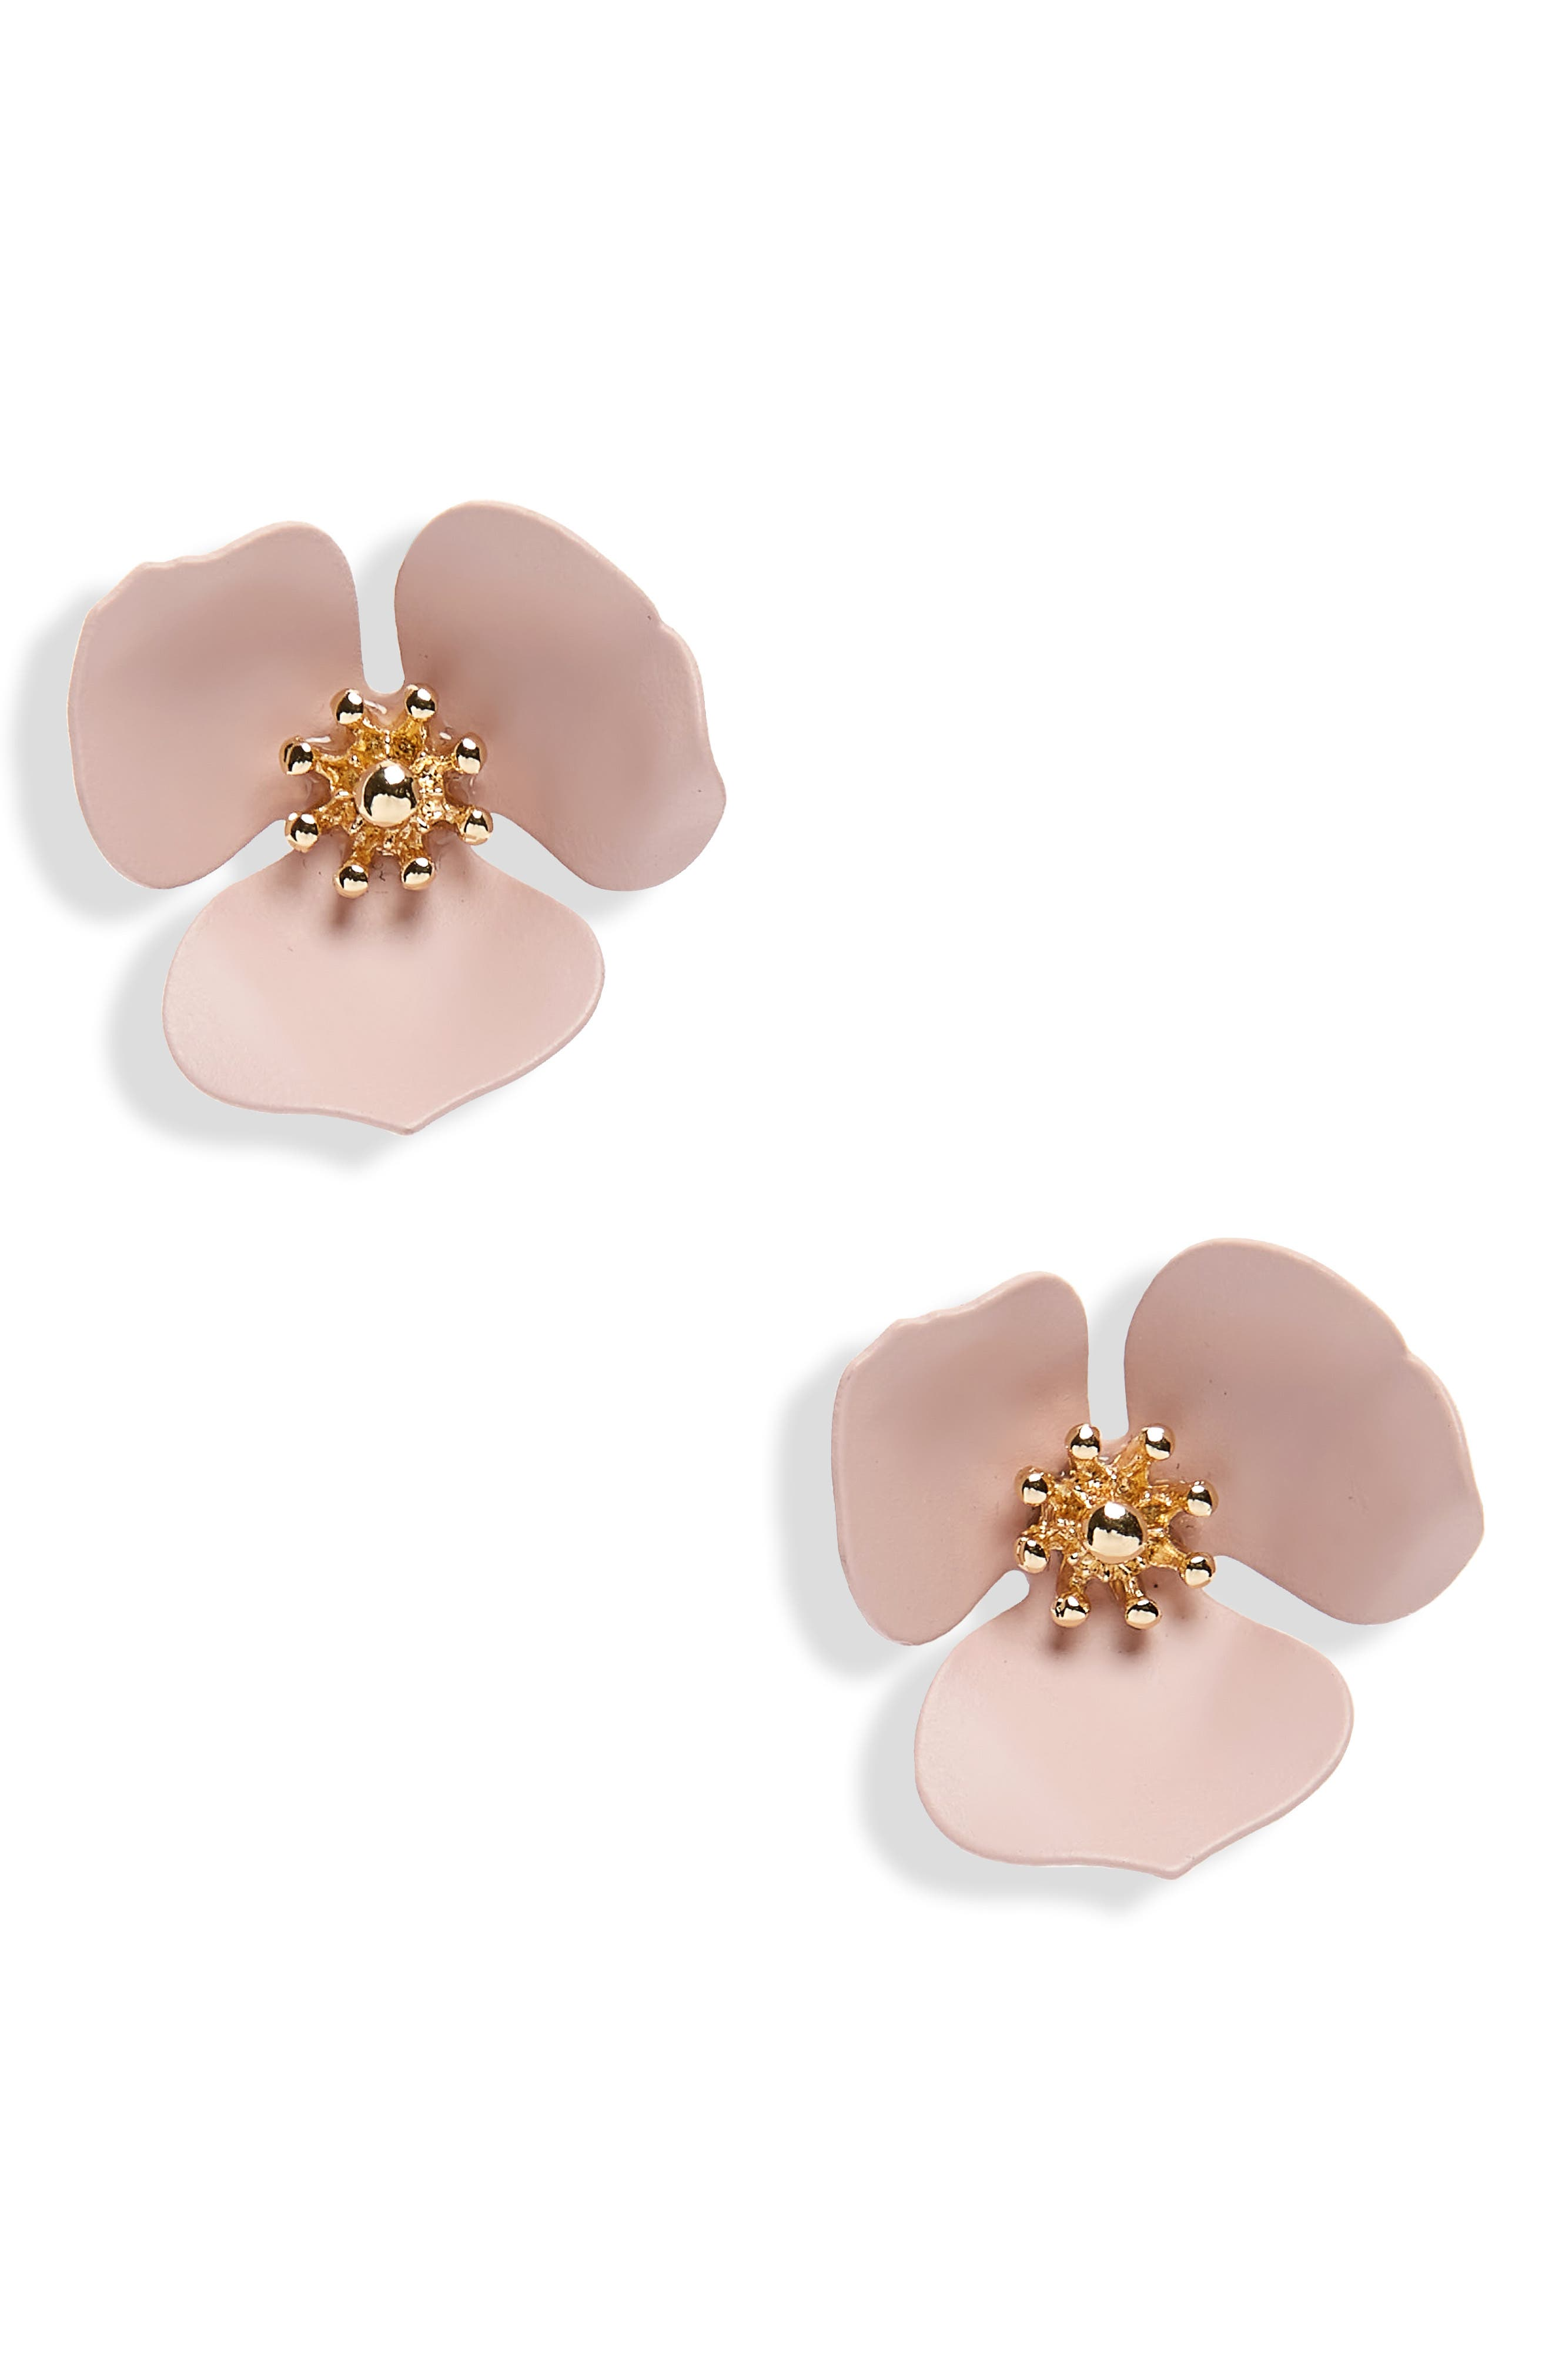 Lily Flower Stud Earrings,                             Main thumbnail 3, color,